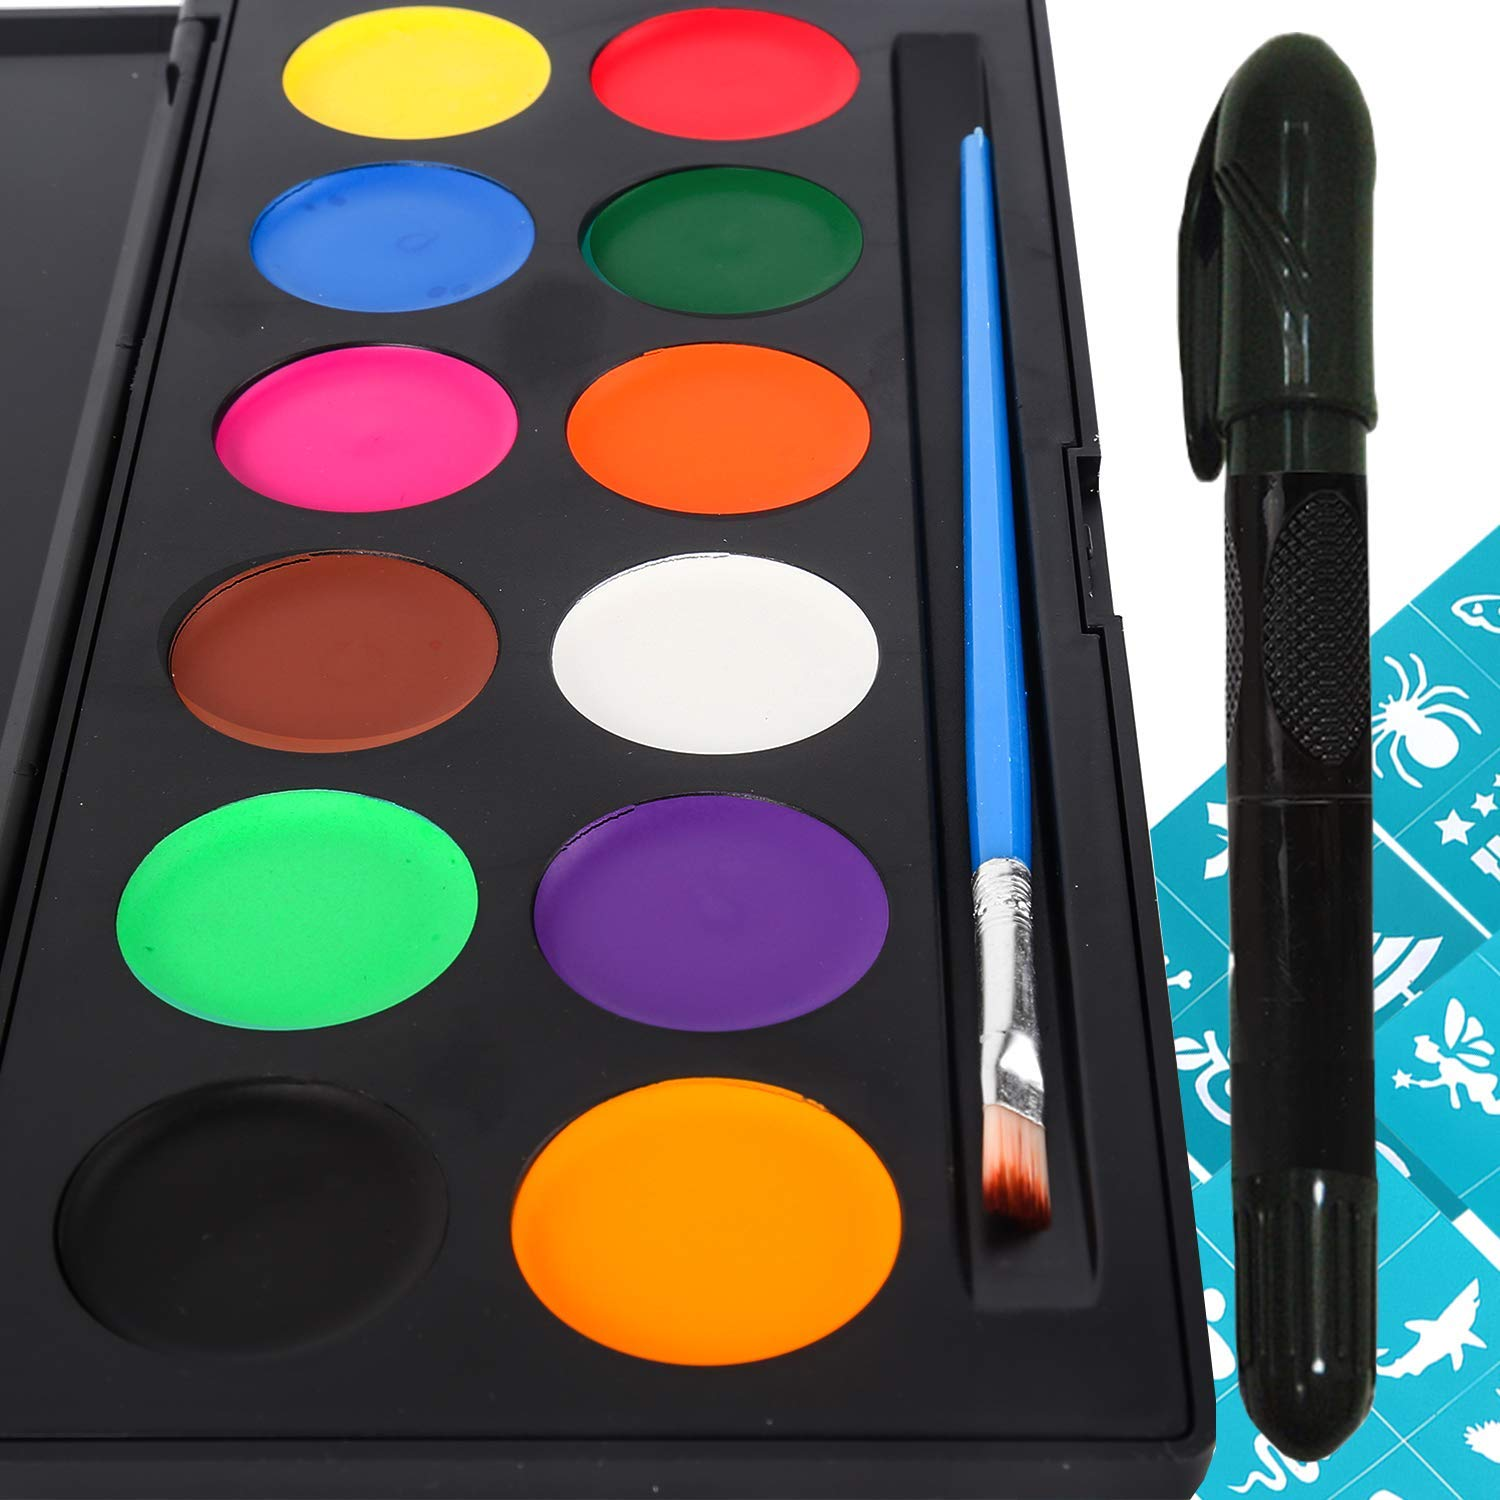 Face Paint Kit for Kids and Adults - 12 Colors Face Painting Palette Bonus 30 Stencils, Brush & Stick - Non-Grease Face Paints Body Paint Makeup Set Water-Based for Facepaint Supplies Or Gift